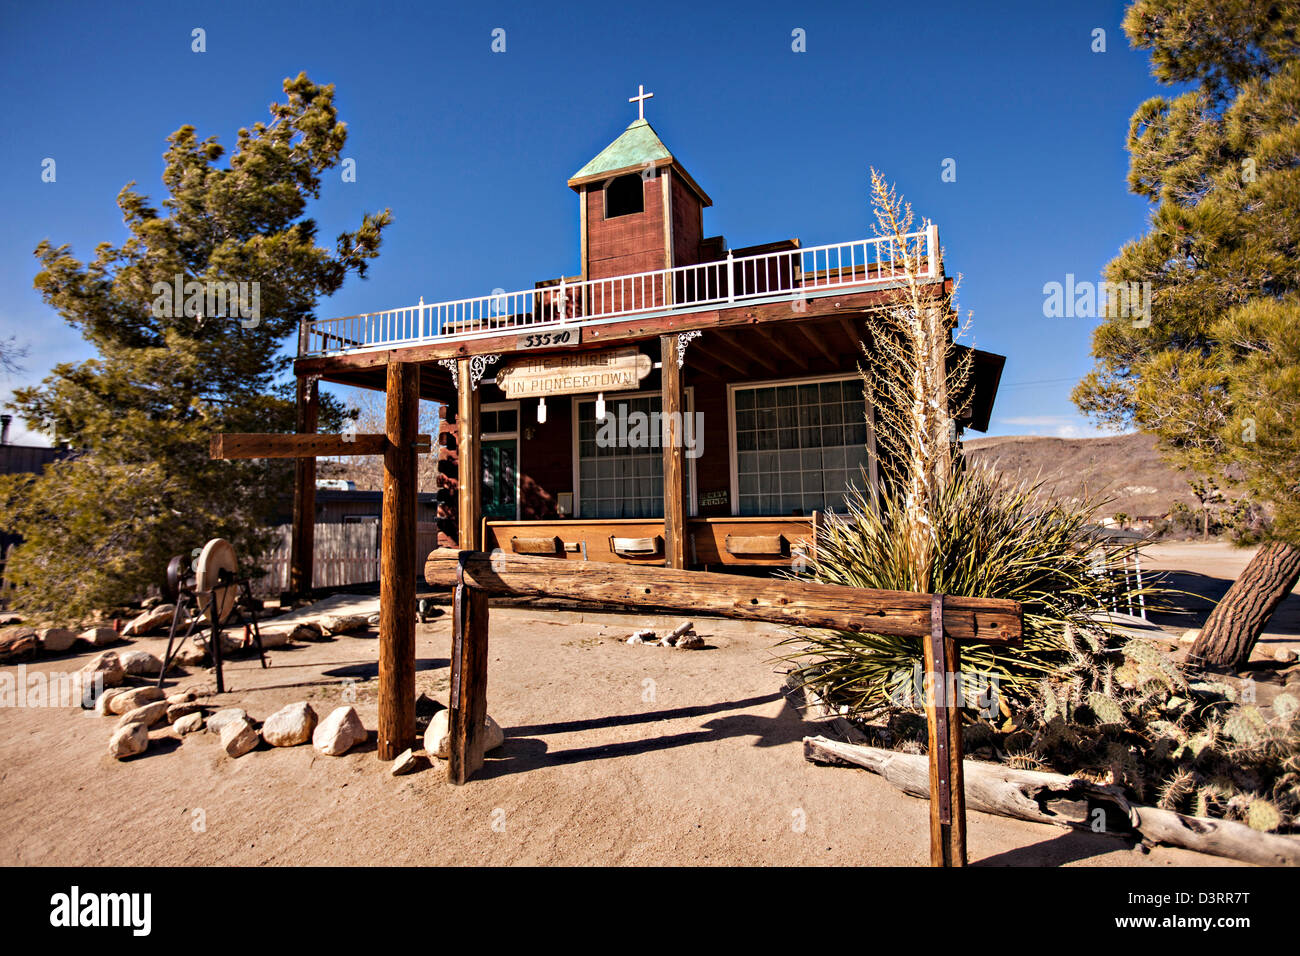 Old West movie set at Pioneertown, California. - Stock Image